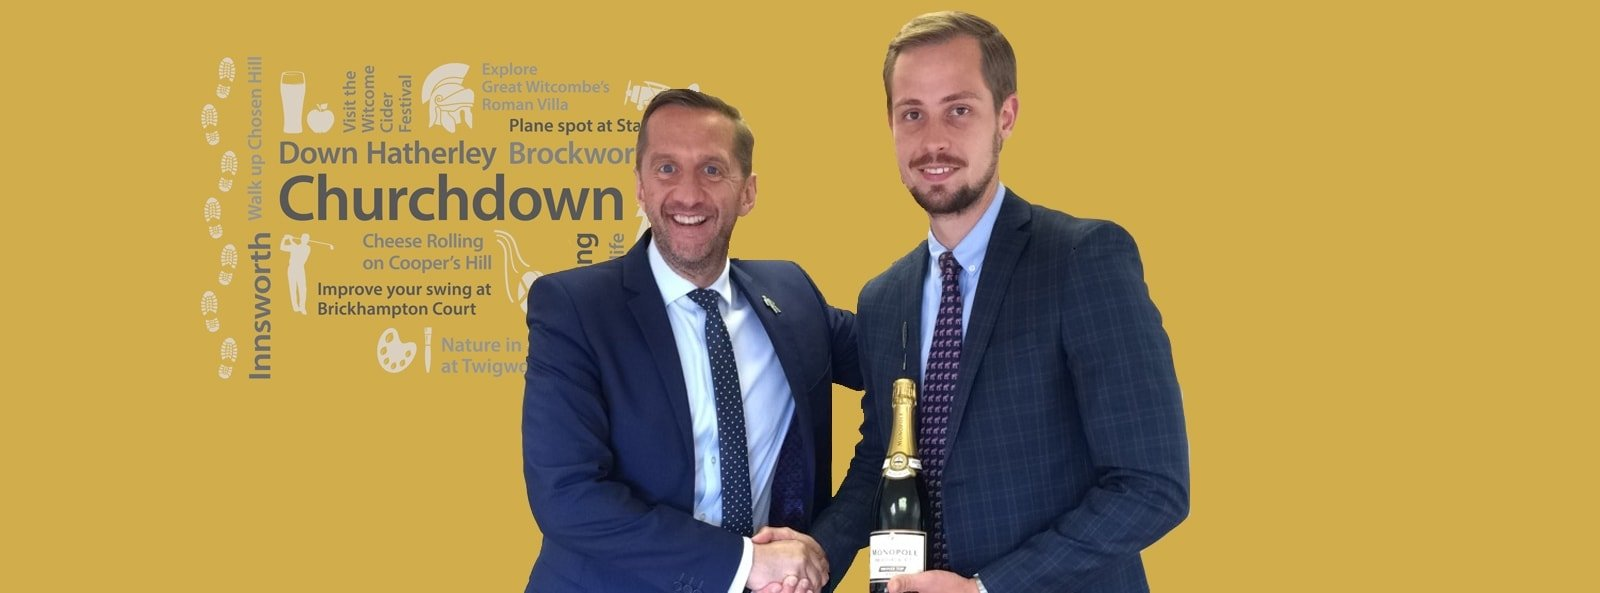 James Morgan Promoted to Churchdown's Branch Manager